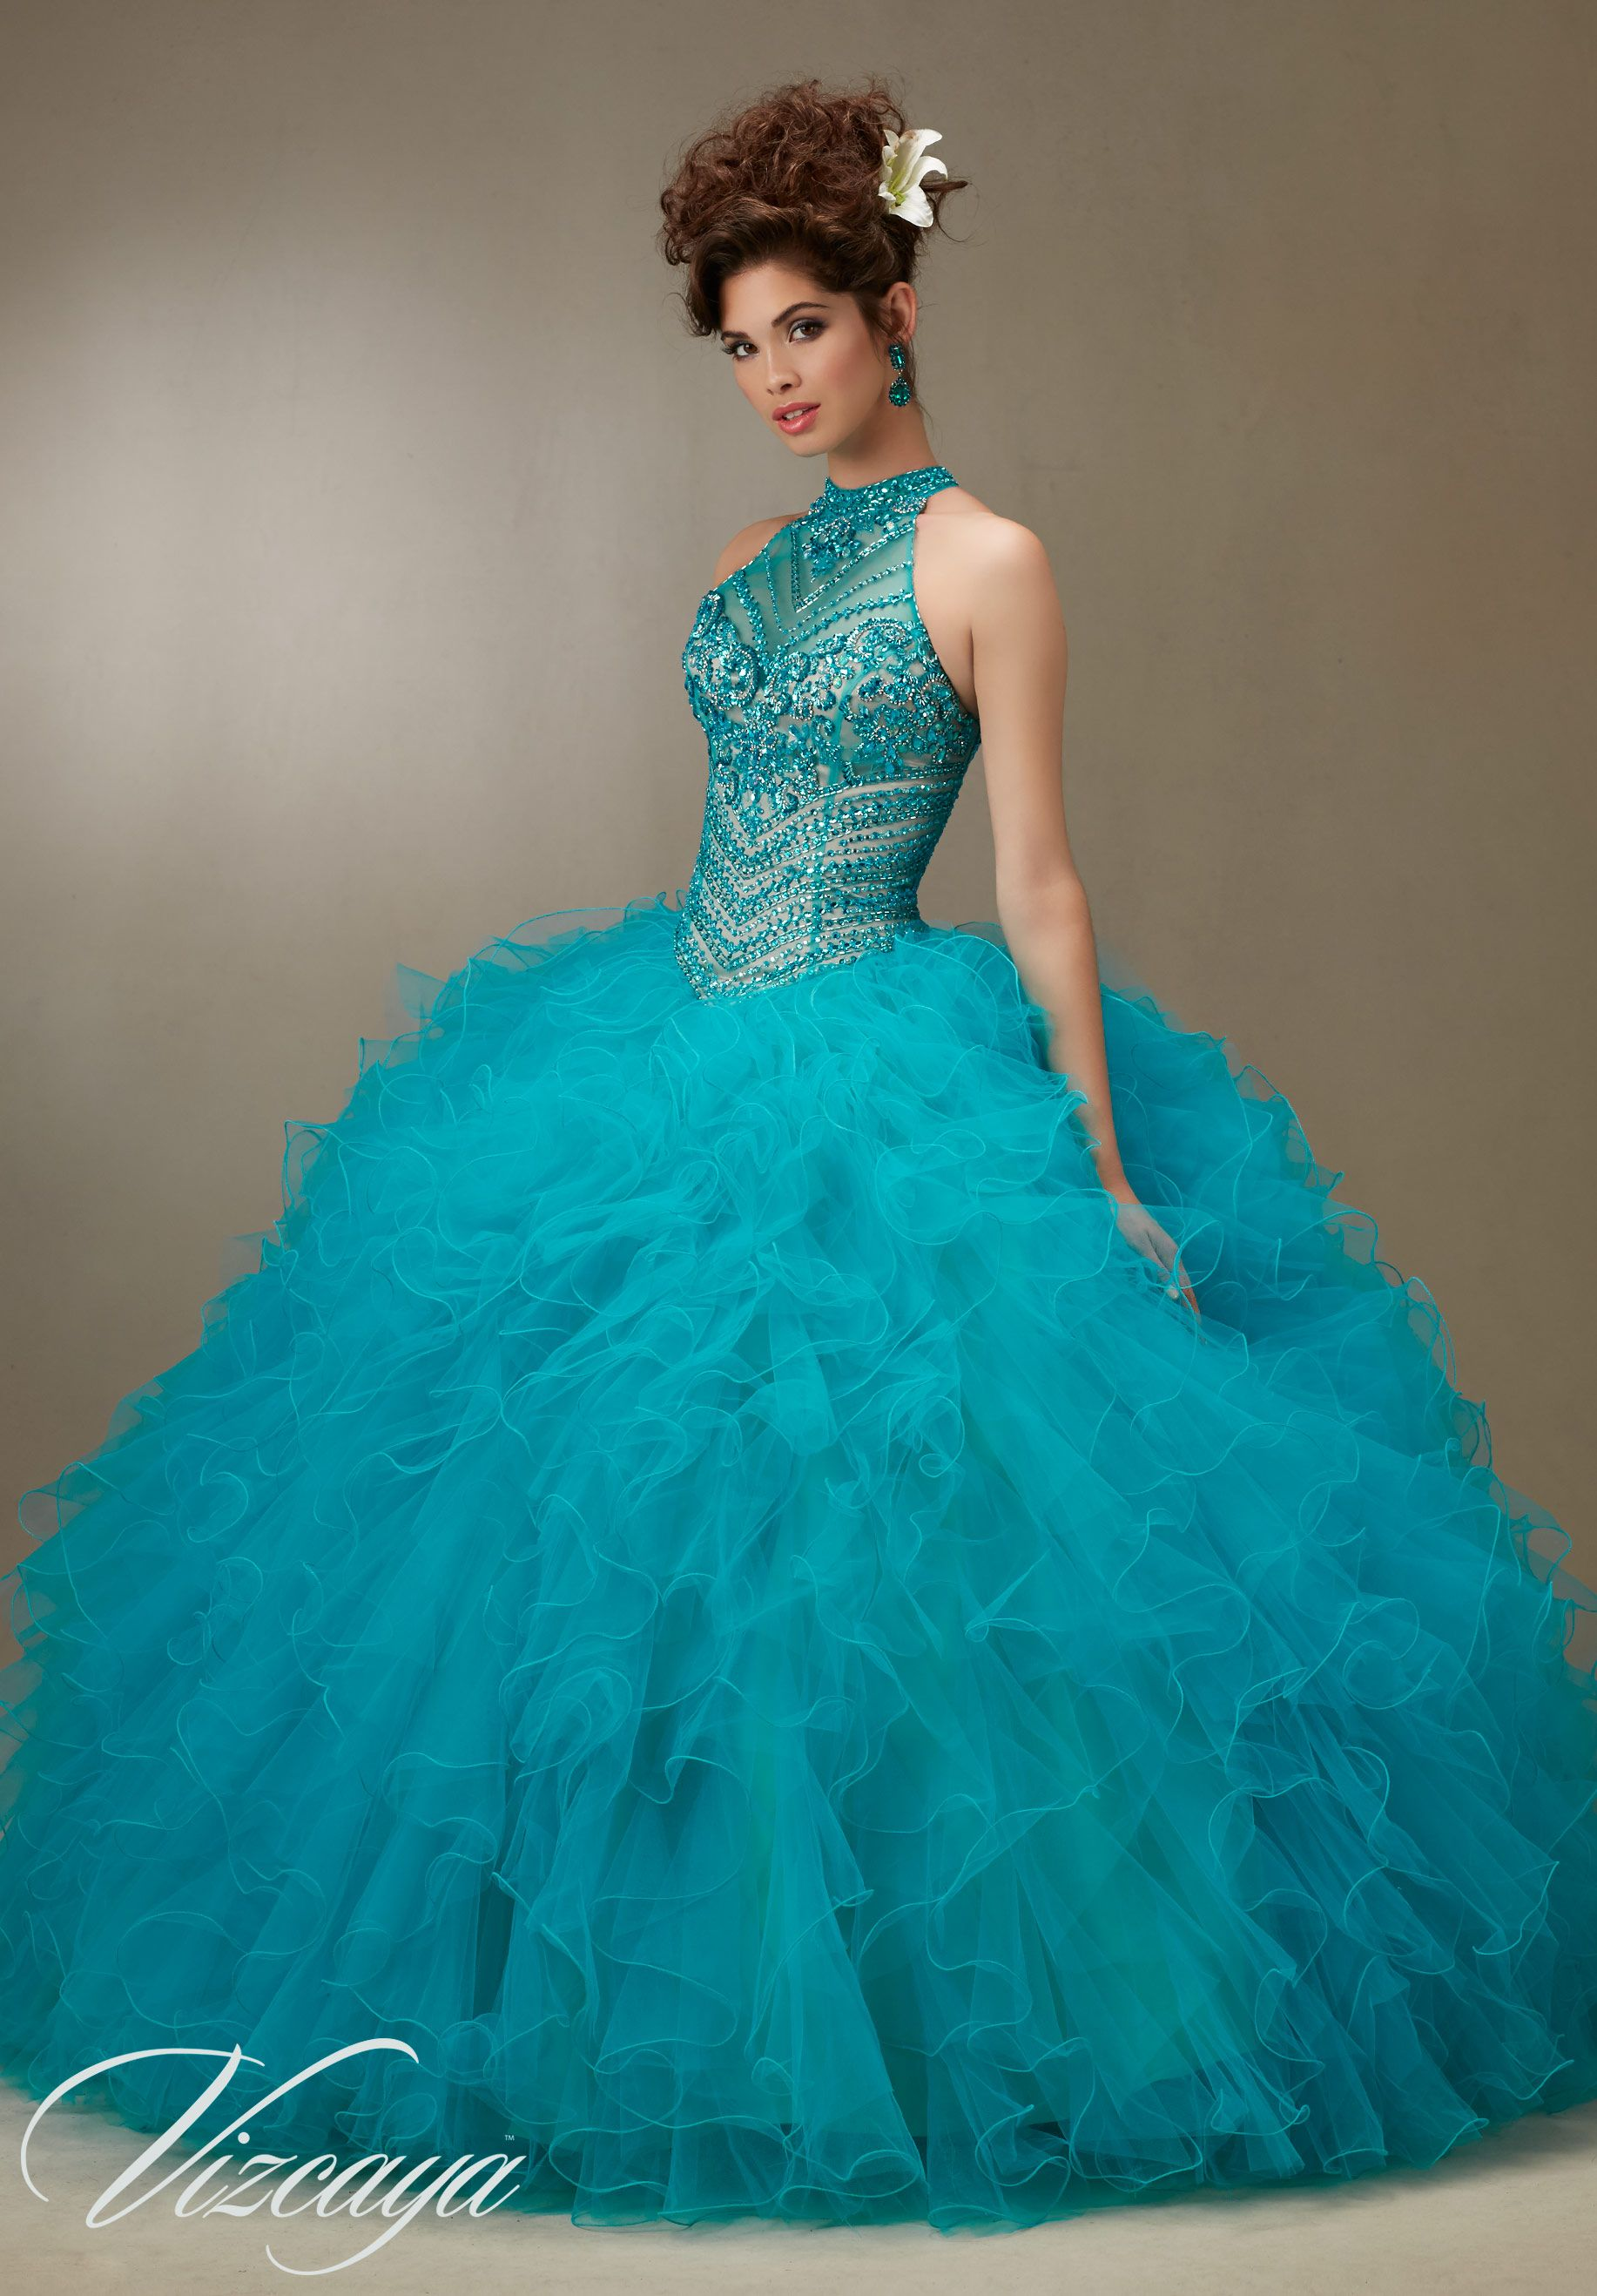 564e502a90c8 Blue Jeweled Beading on a Ruffled Tulle Princess Ball Gown Quinceanera Dress.  High Neck by Vizcaya Designed by Madeline Gardner. Matching Stole included.